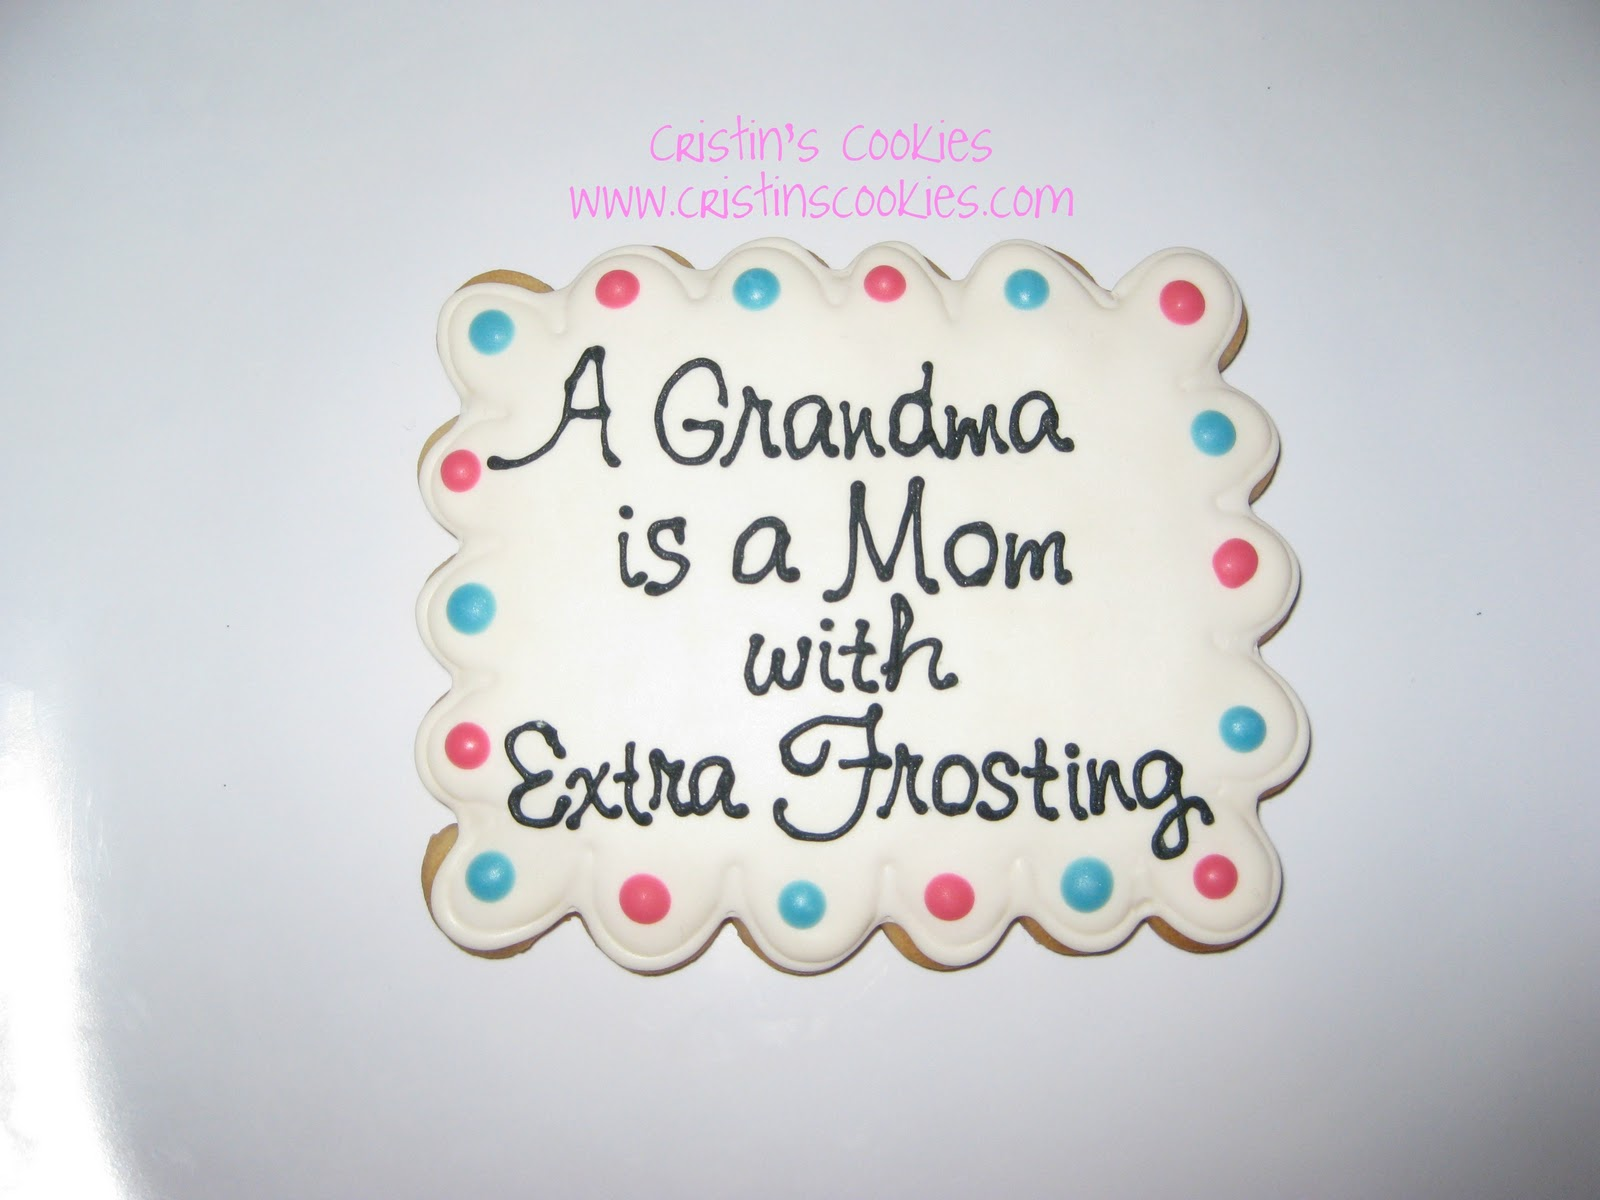 A Grandma Is A Mom With Extra Frosting.